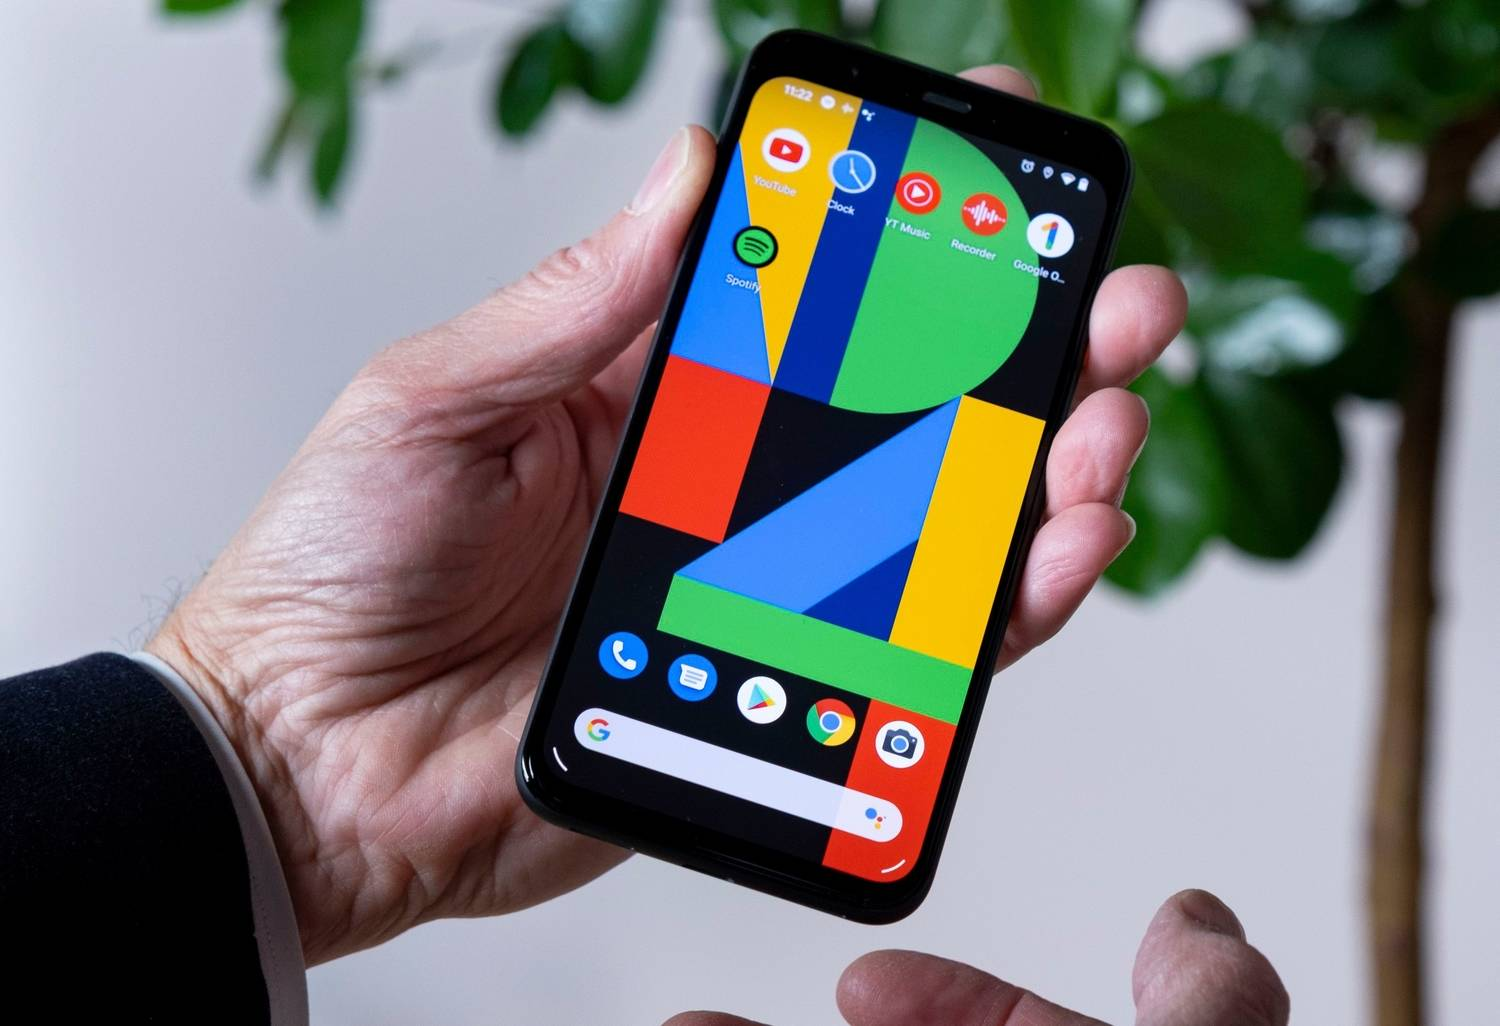 How to put contacts on the home screen of an Android?